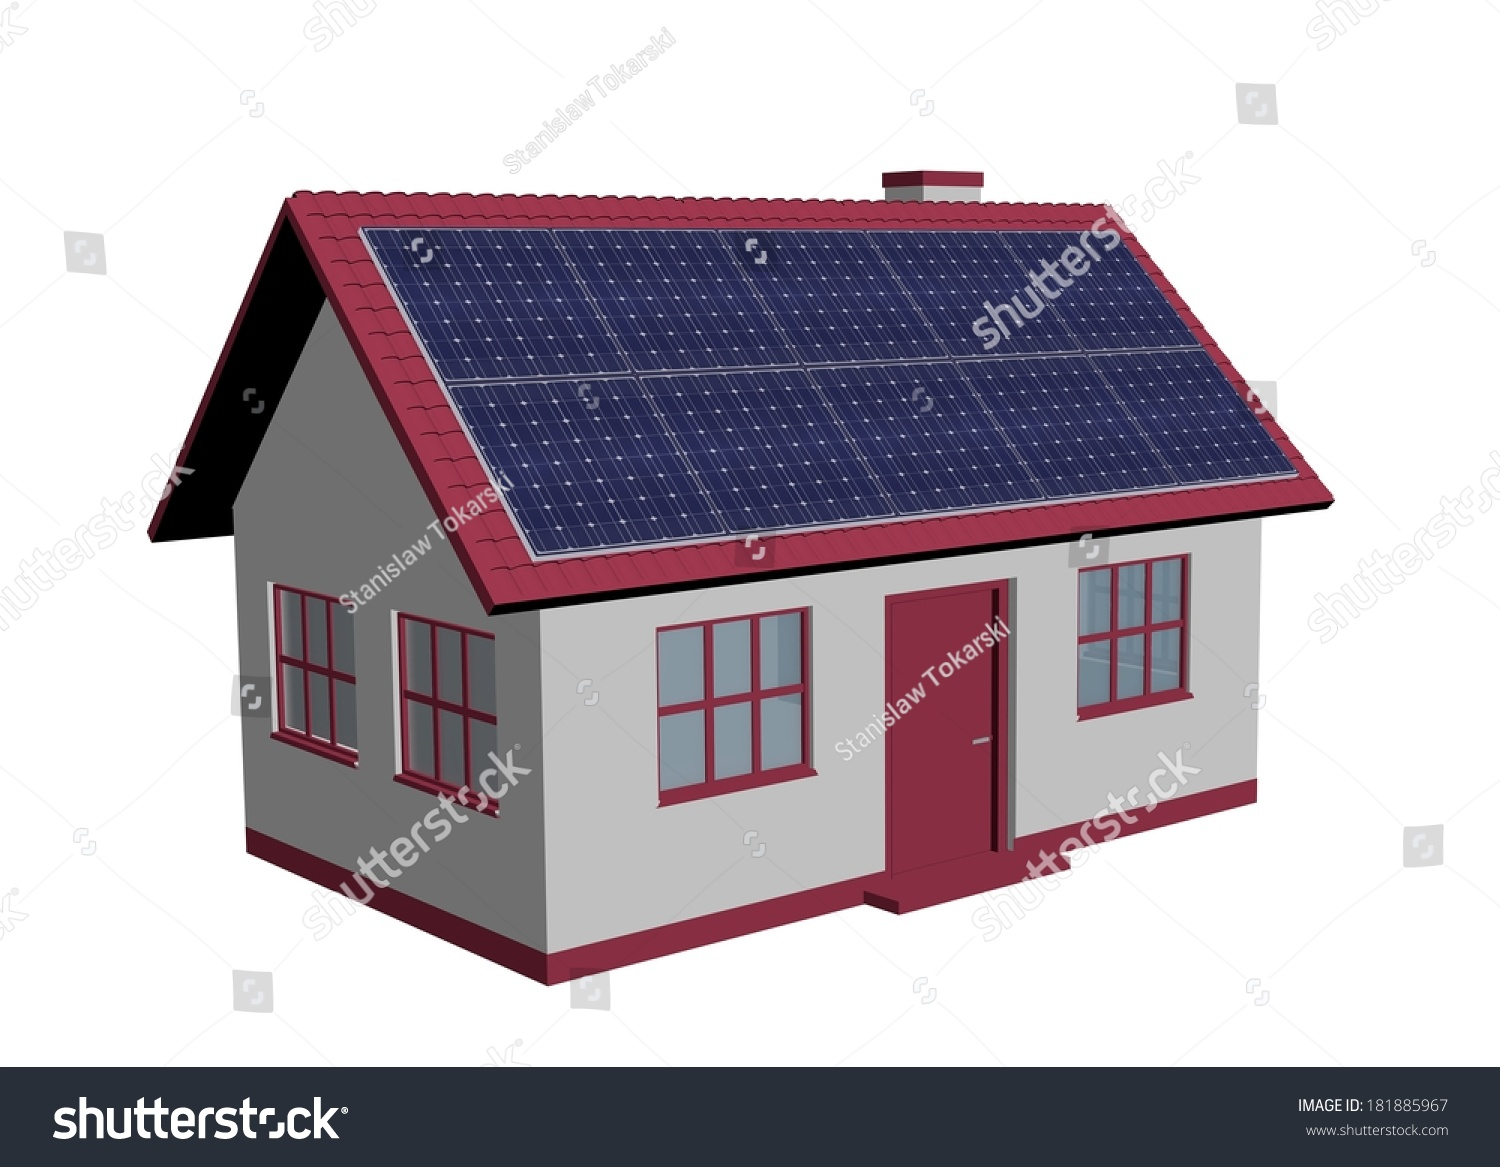 3d render simple house model with solar panels stock photo for Simple model house picture